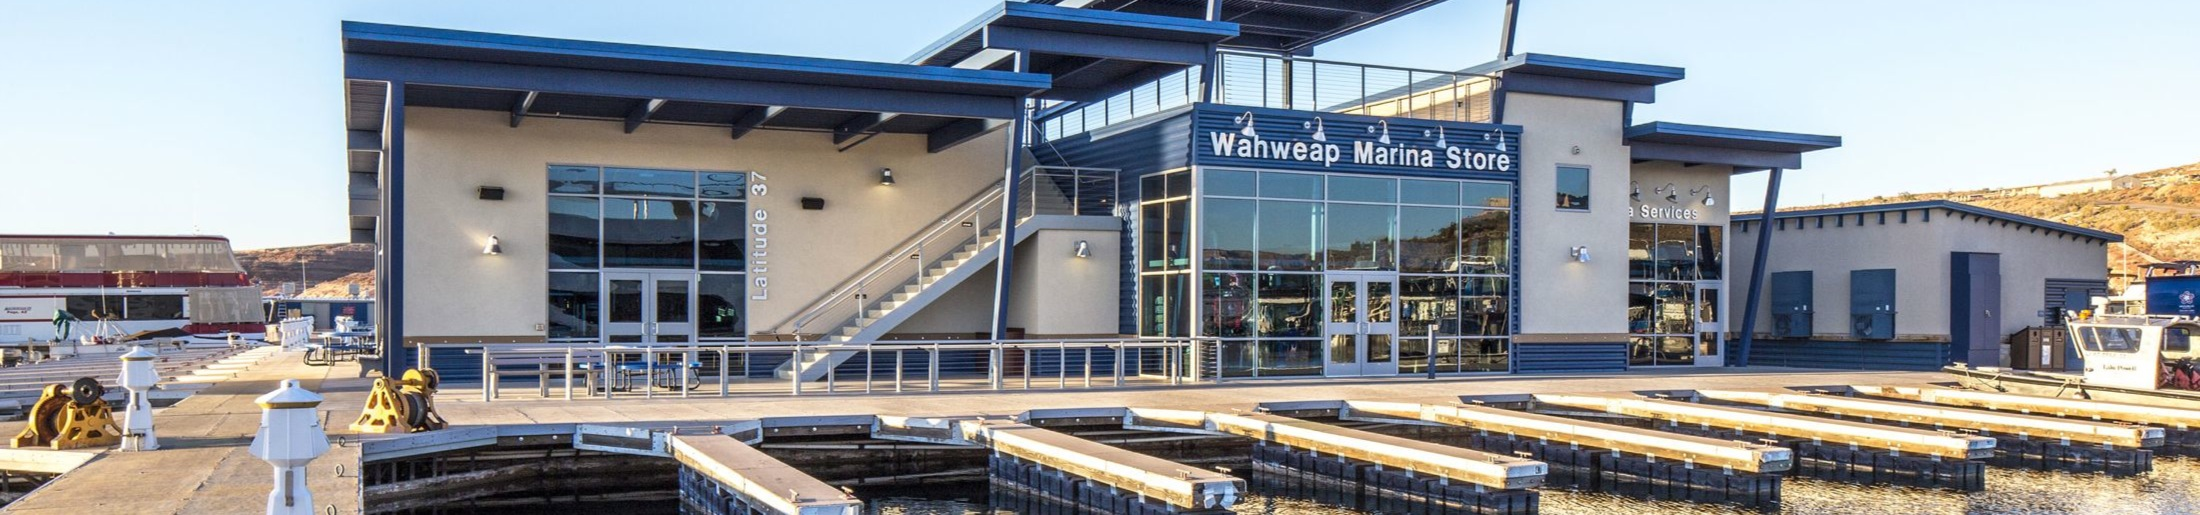 Wahweap Marina Store on South Lake Powell